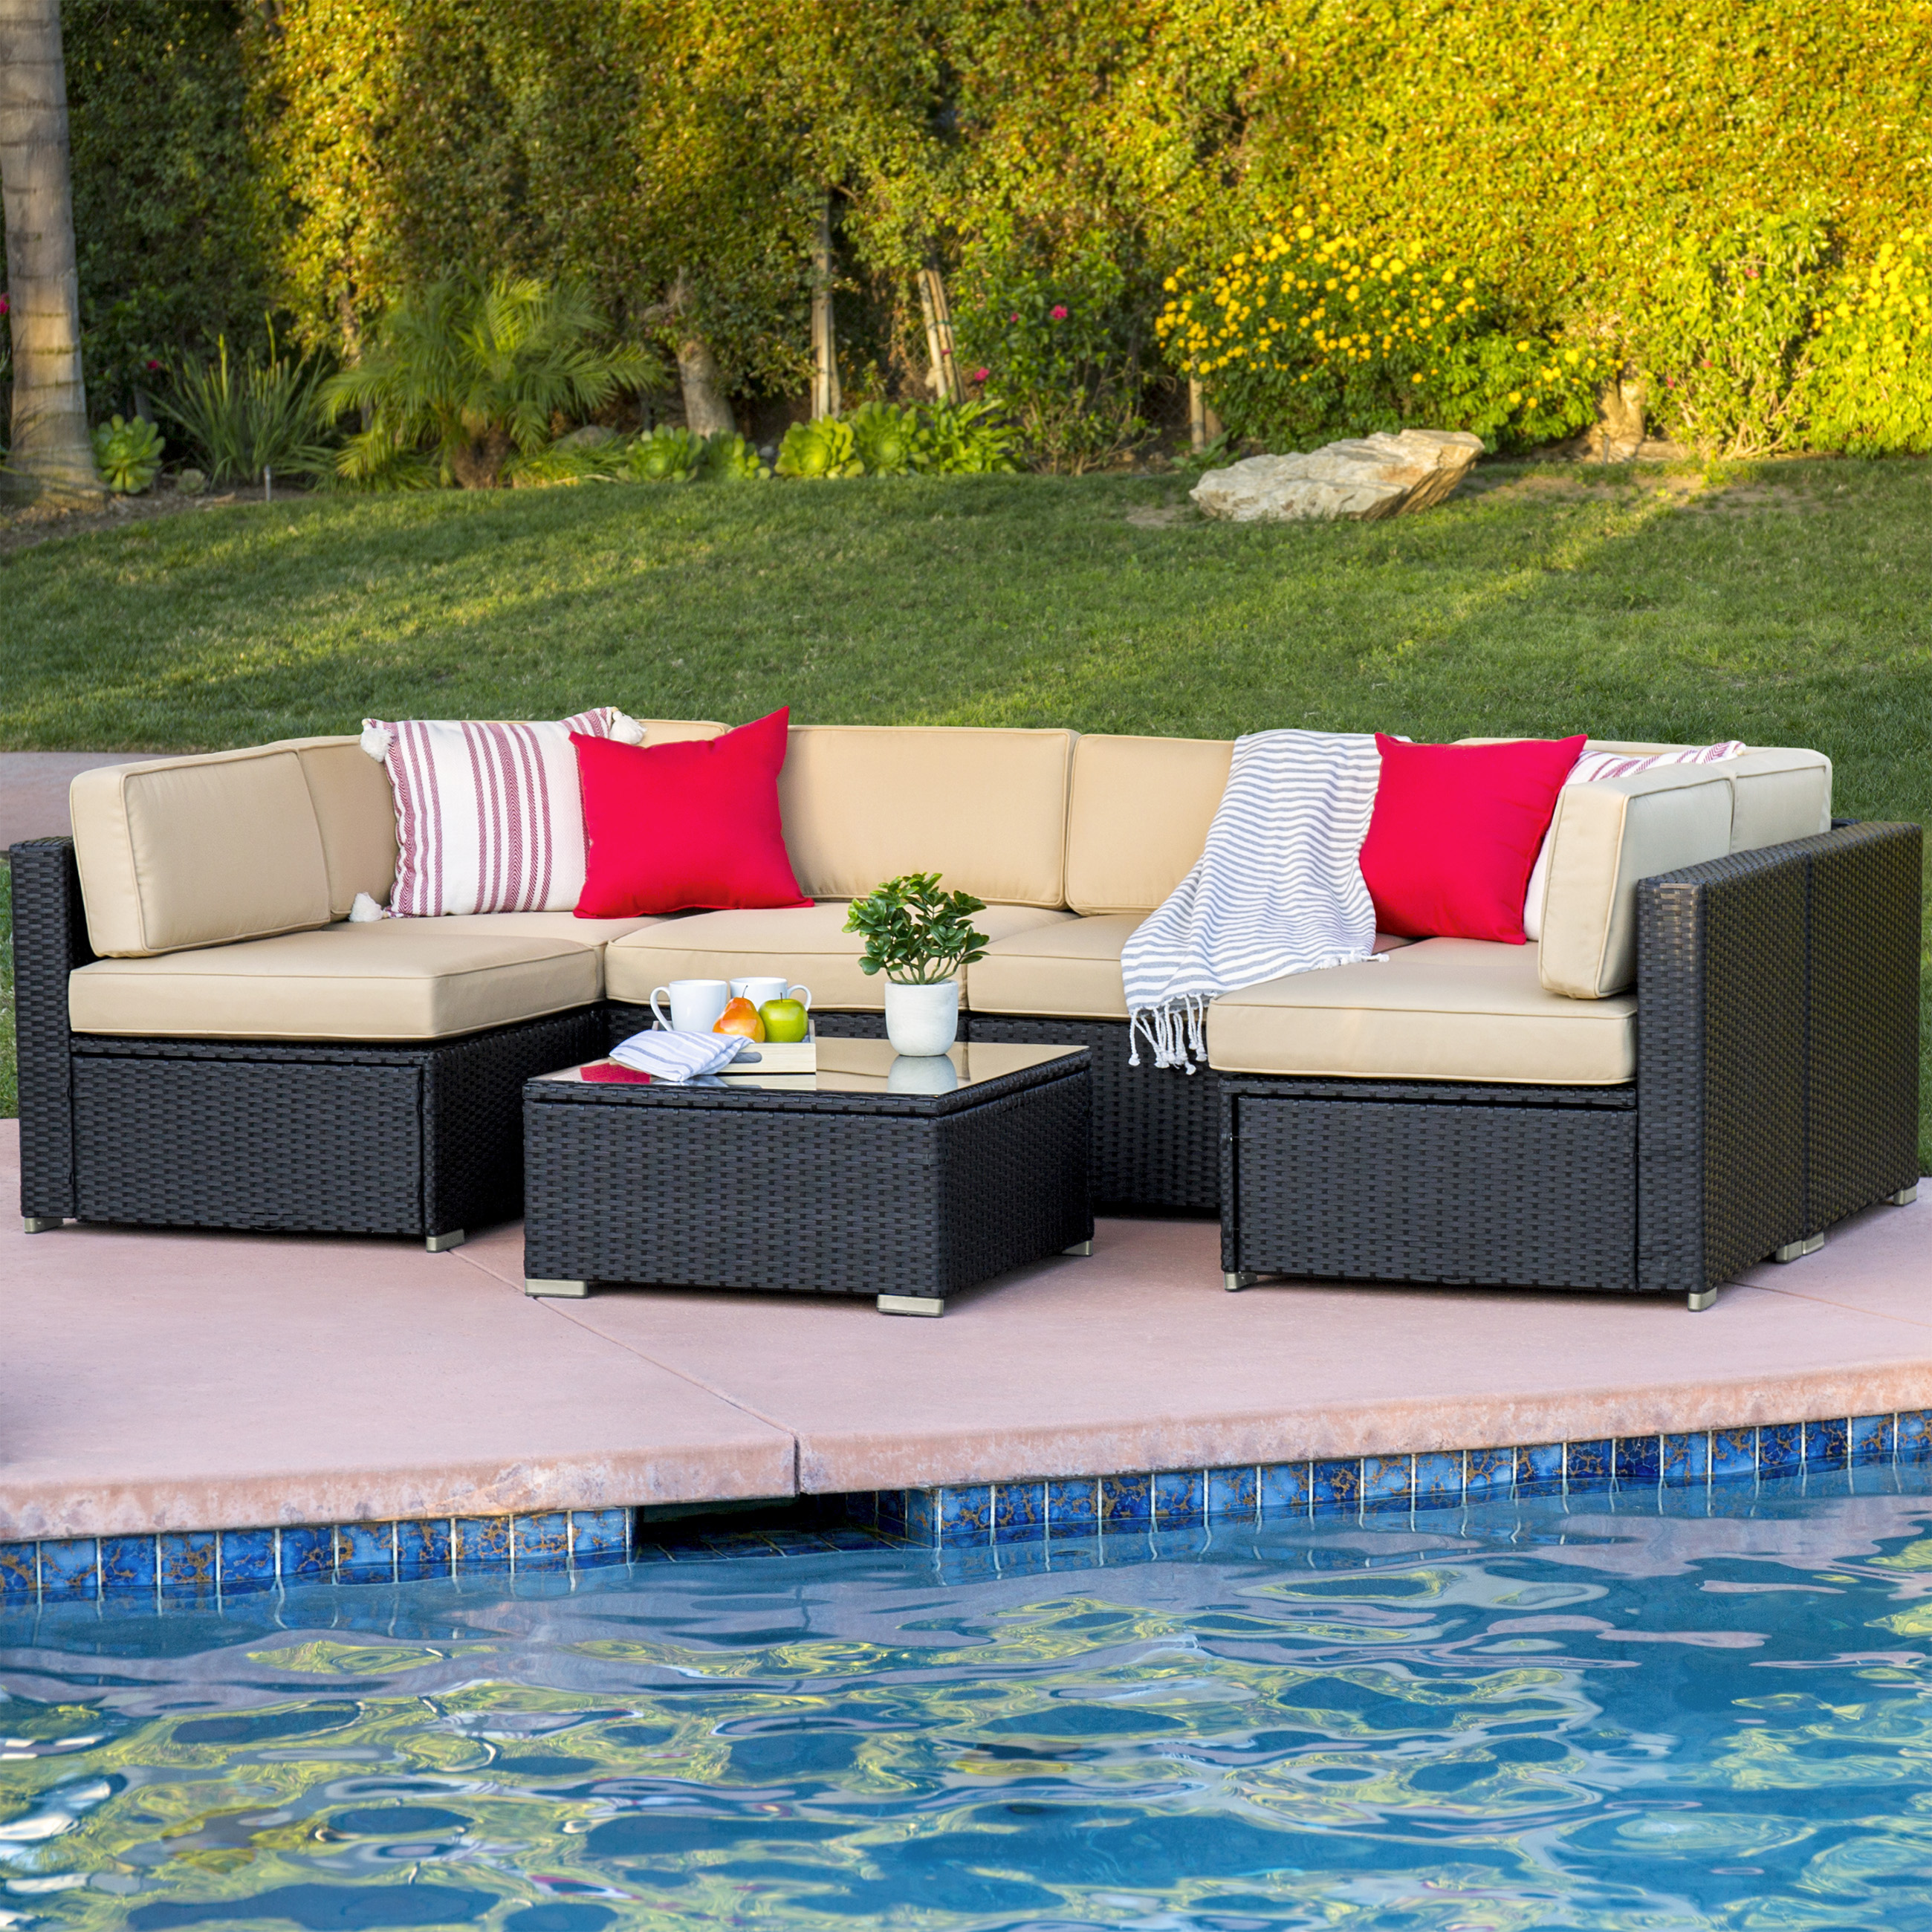 Best Choice Products 7pc Outdoor Patio Garden Wicker Furniture